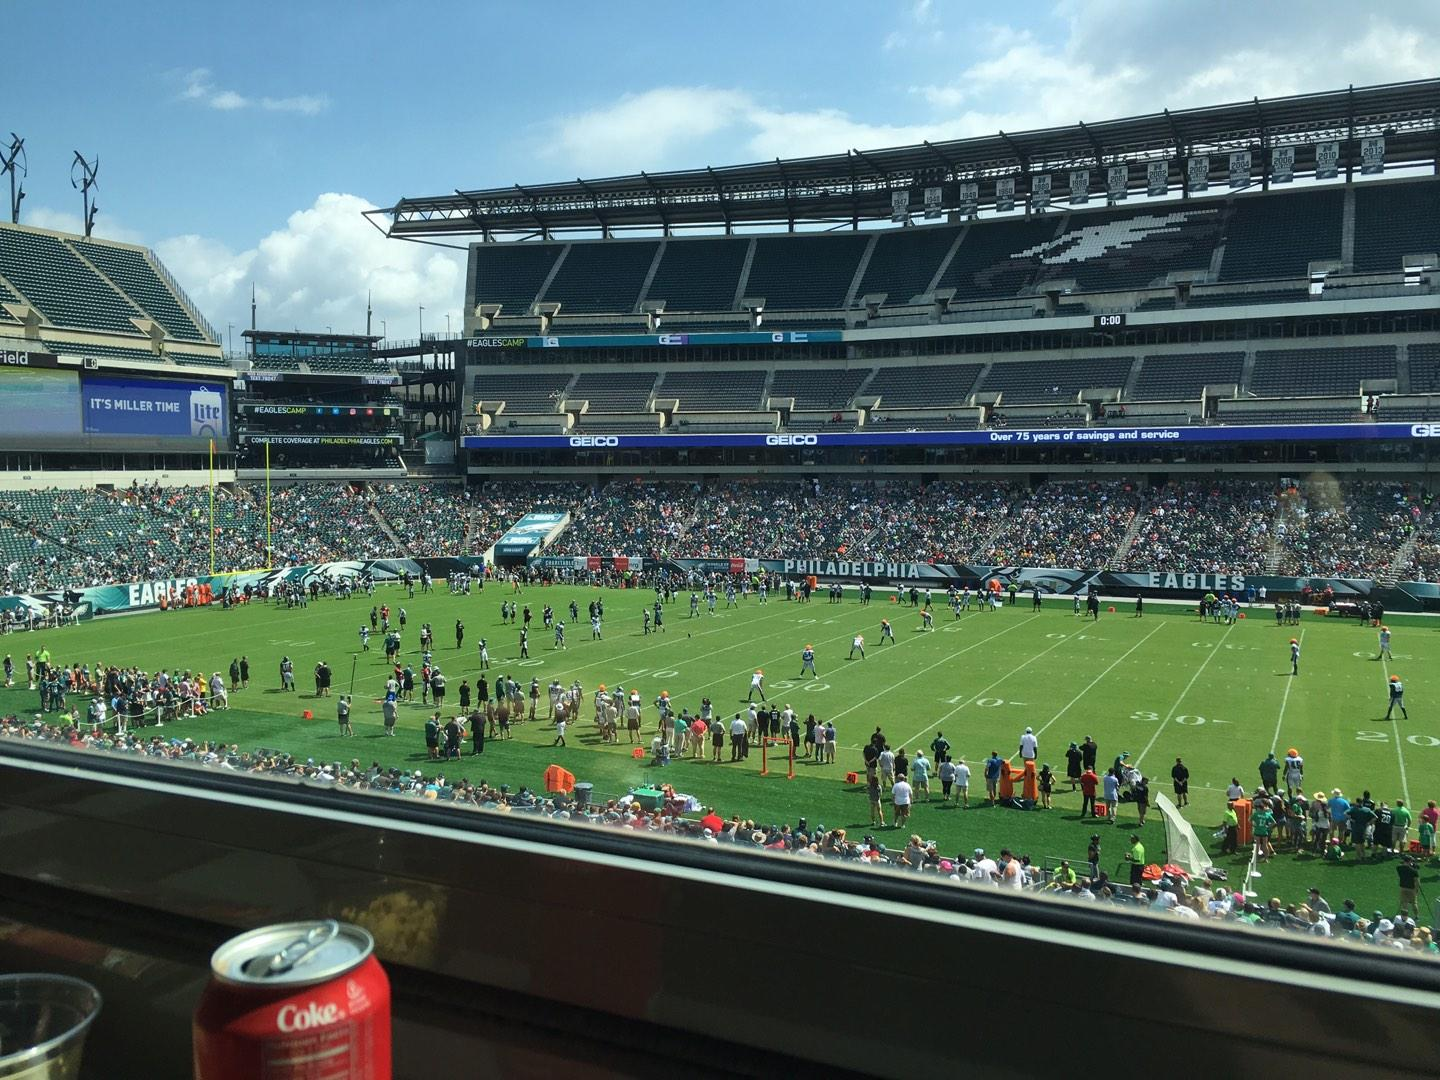 Lincoln Financial Field Section LS62 Row 1 Seat 2